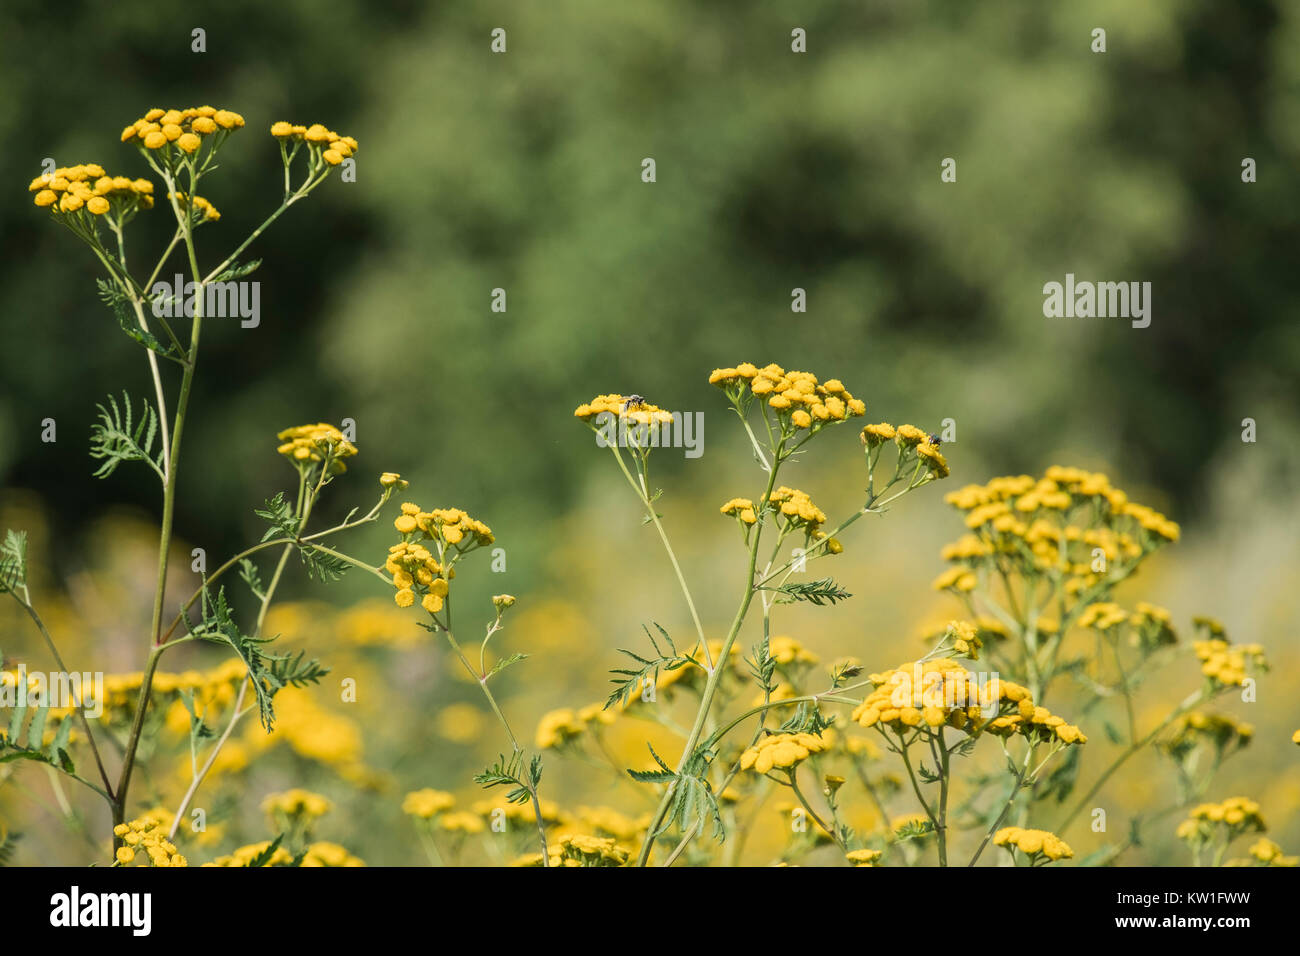 Medicinal herbs yellow flowers tansy on a blurred background stock medicinal herbs yellow flowers tansy on a blurred background tanacetum vulgare mightylinksfo